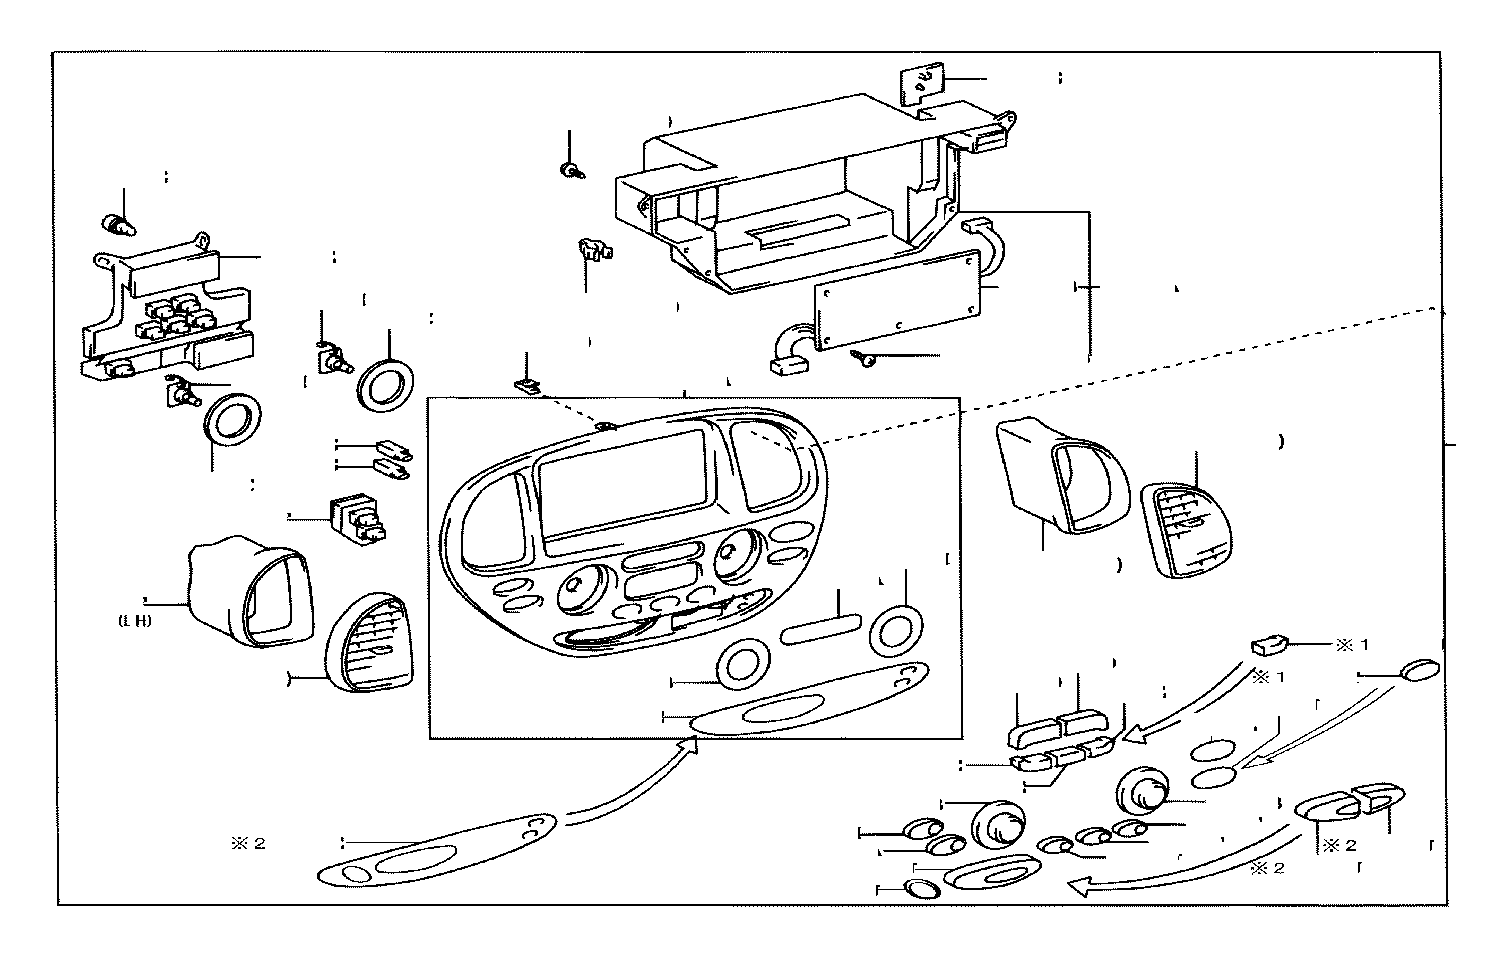 Toyota Sequoia Board sub-assembly, printed wire